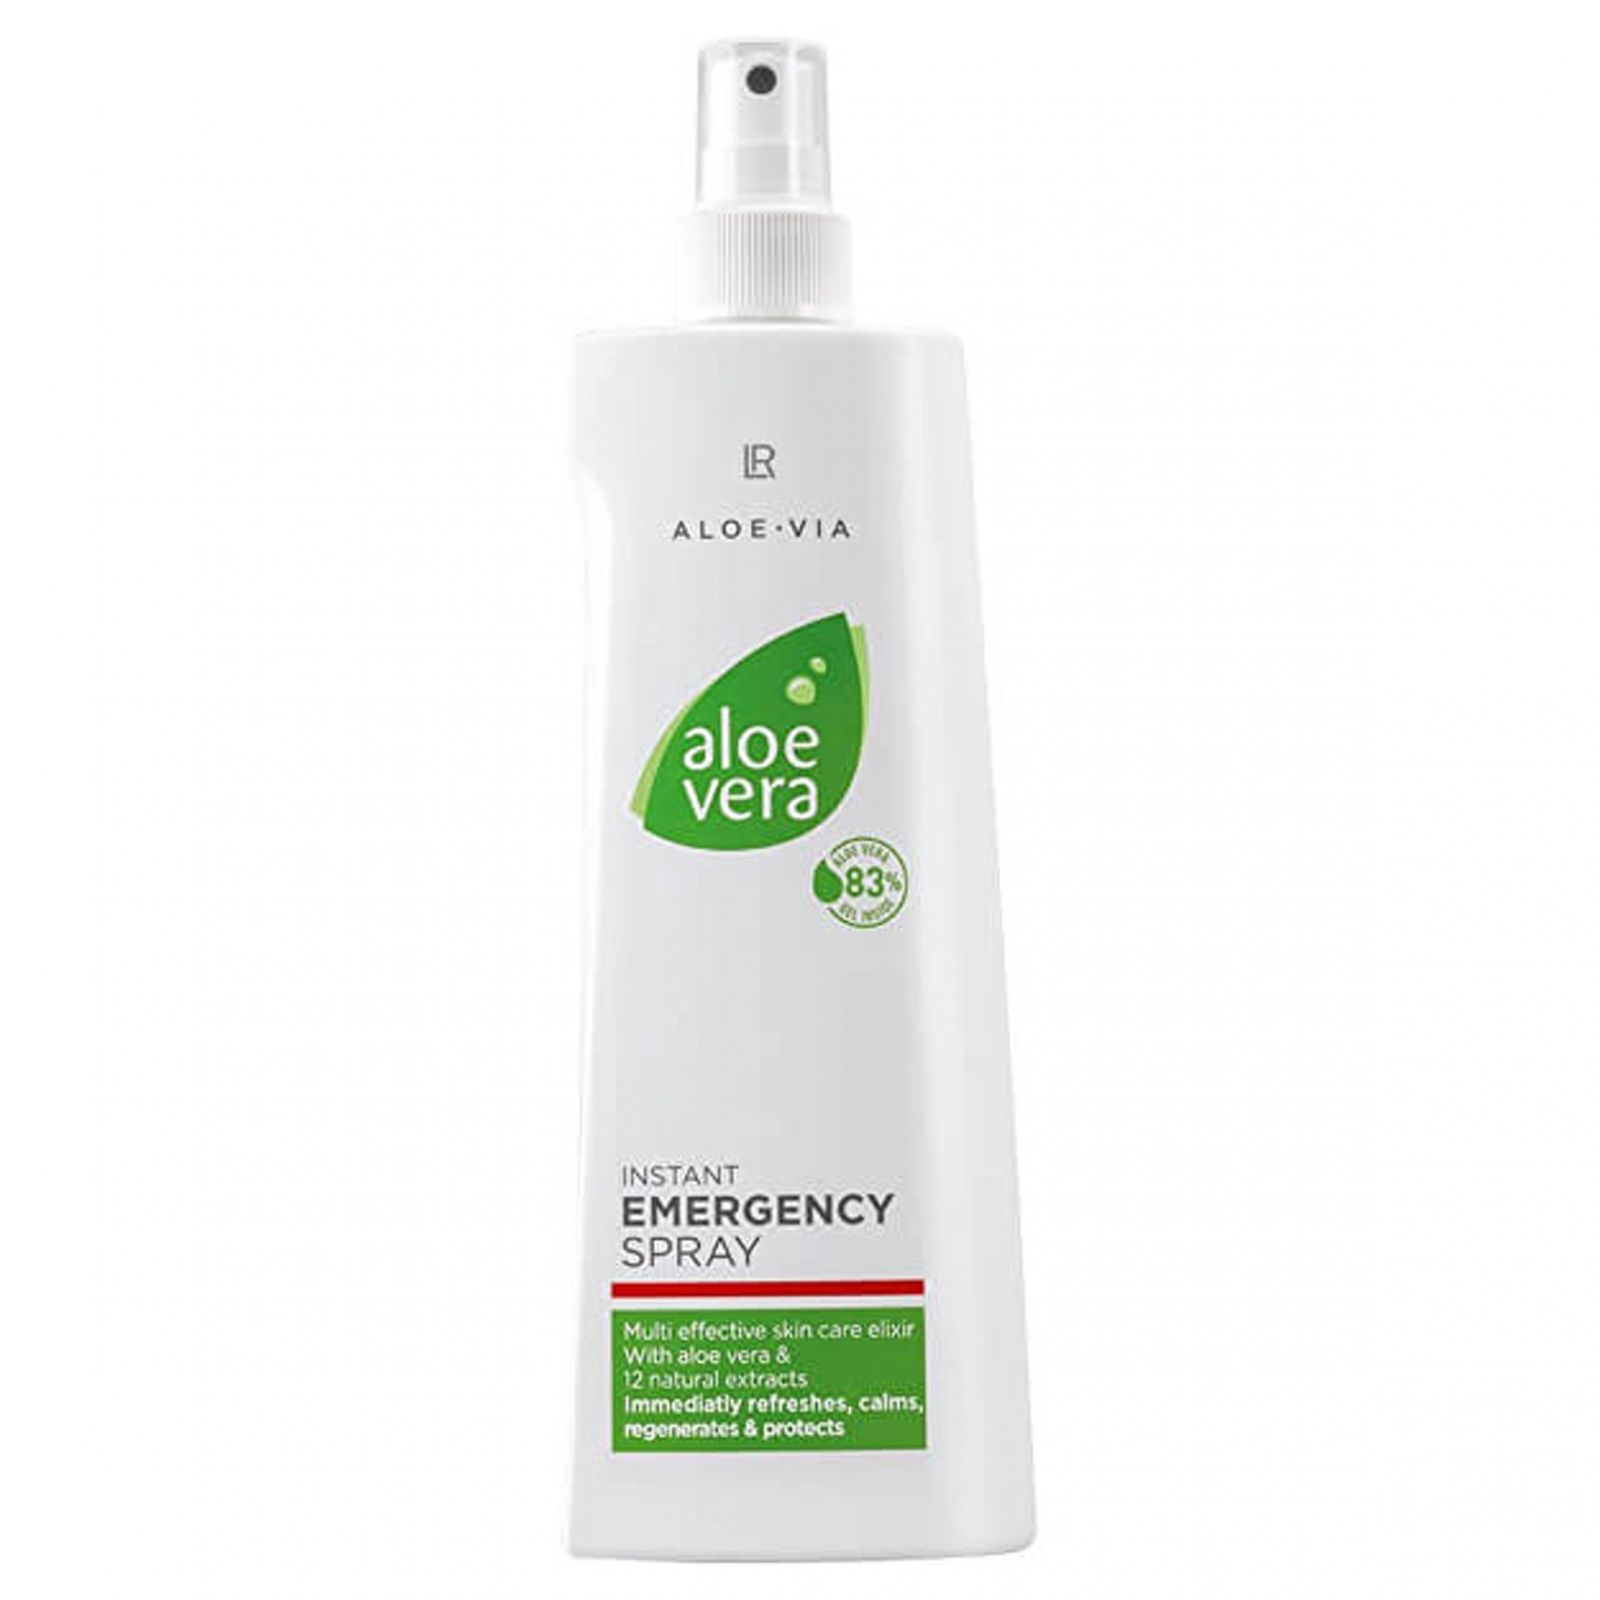 "LR Aloe Vera Via Spray první pomoci ""emergency spray"""